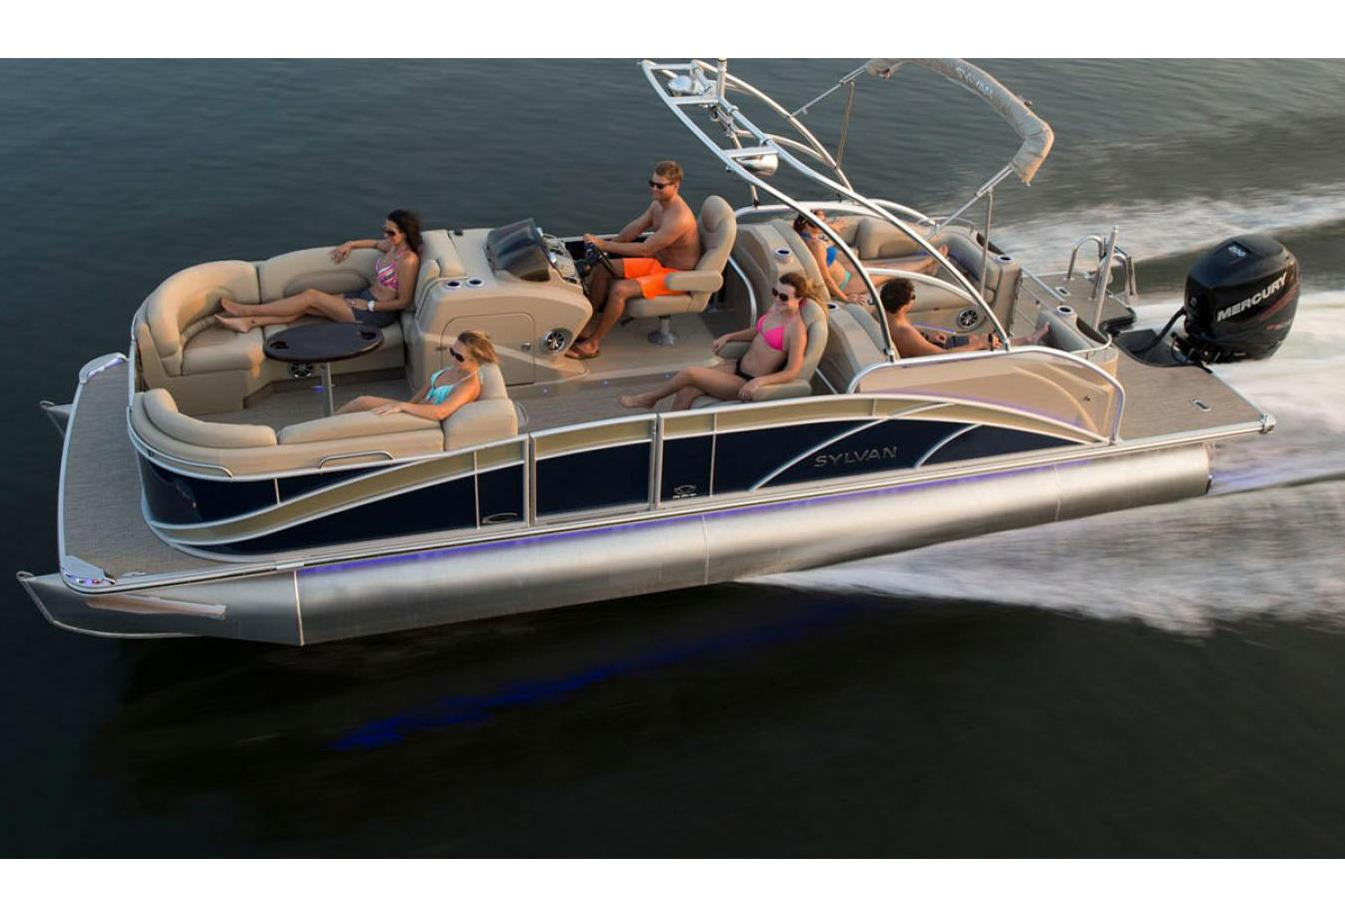 New 2016 Sylvan Mandalay 8525 Sportlounger Power Boats